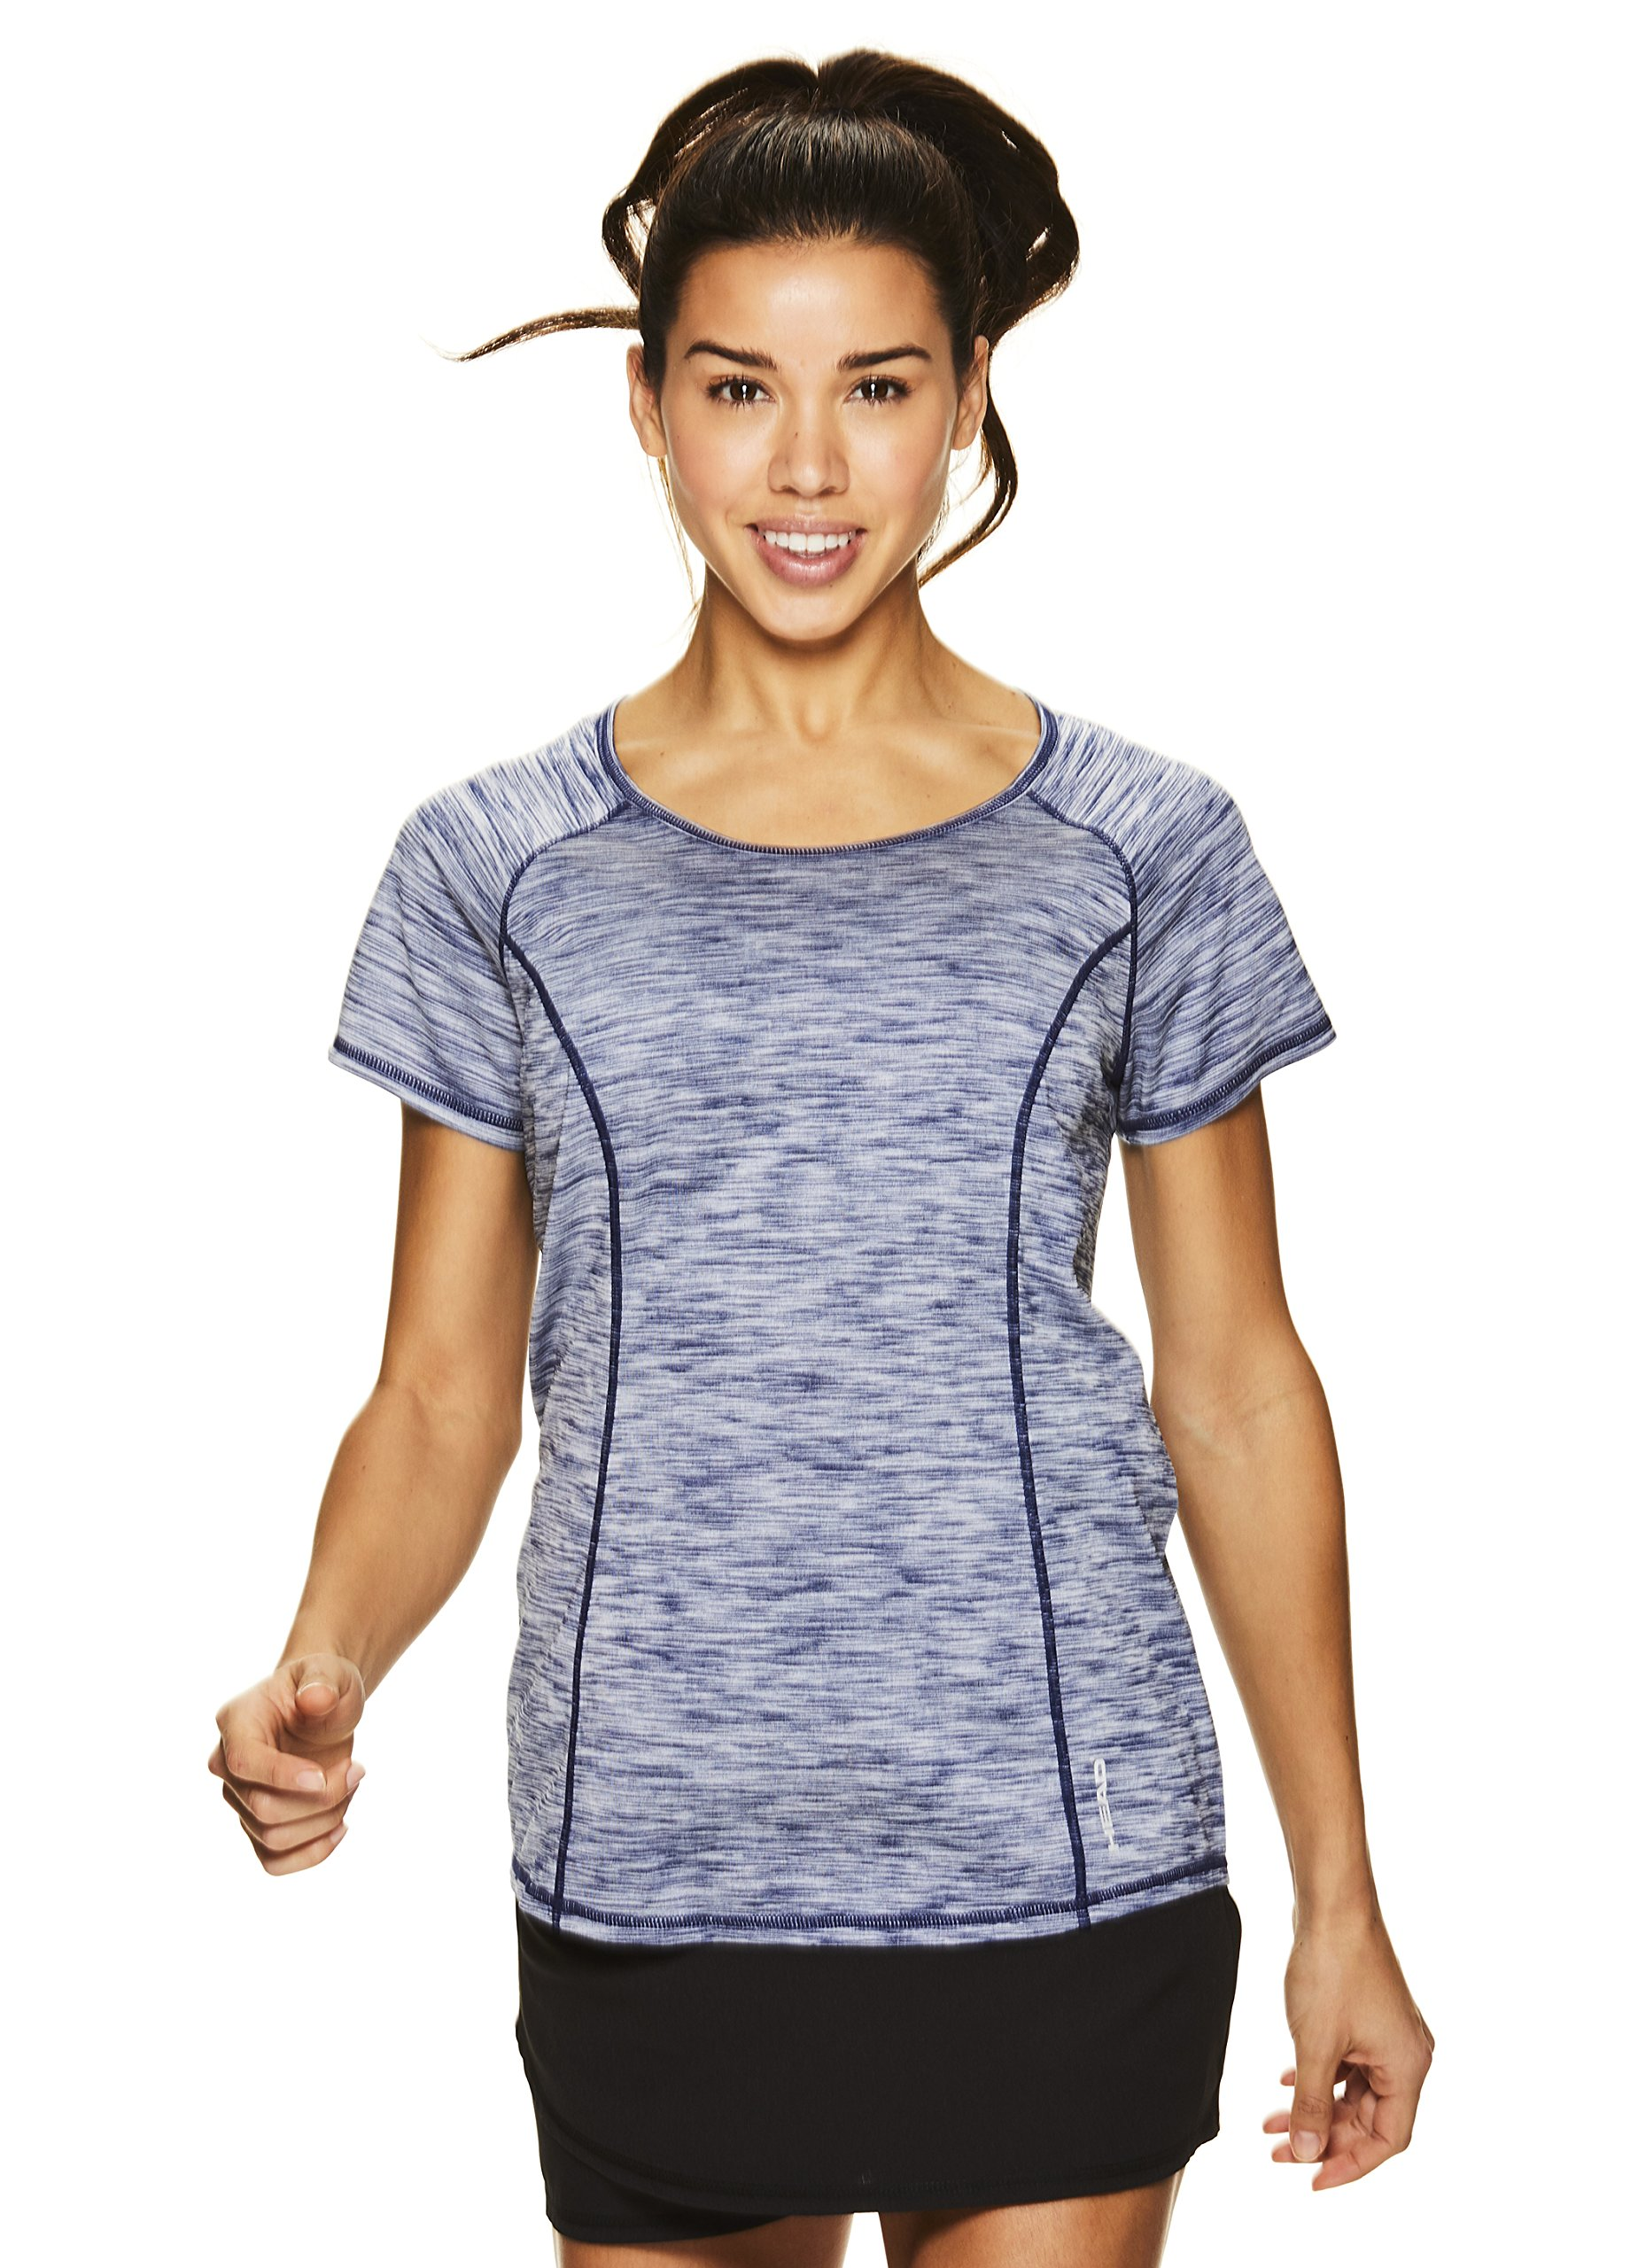 HEAD Women's Serena Short Sleeve Workout T-Shirt - Performance Crew Neck Activewear Top - Medieval Blue Heather, X-Small by HEAD (Image #4)